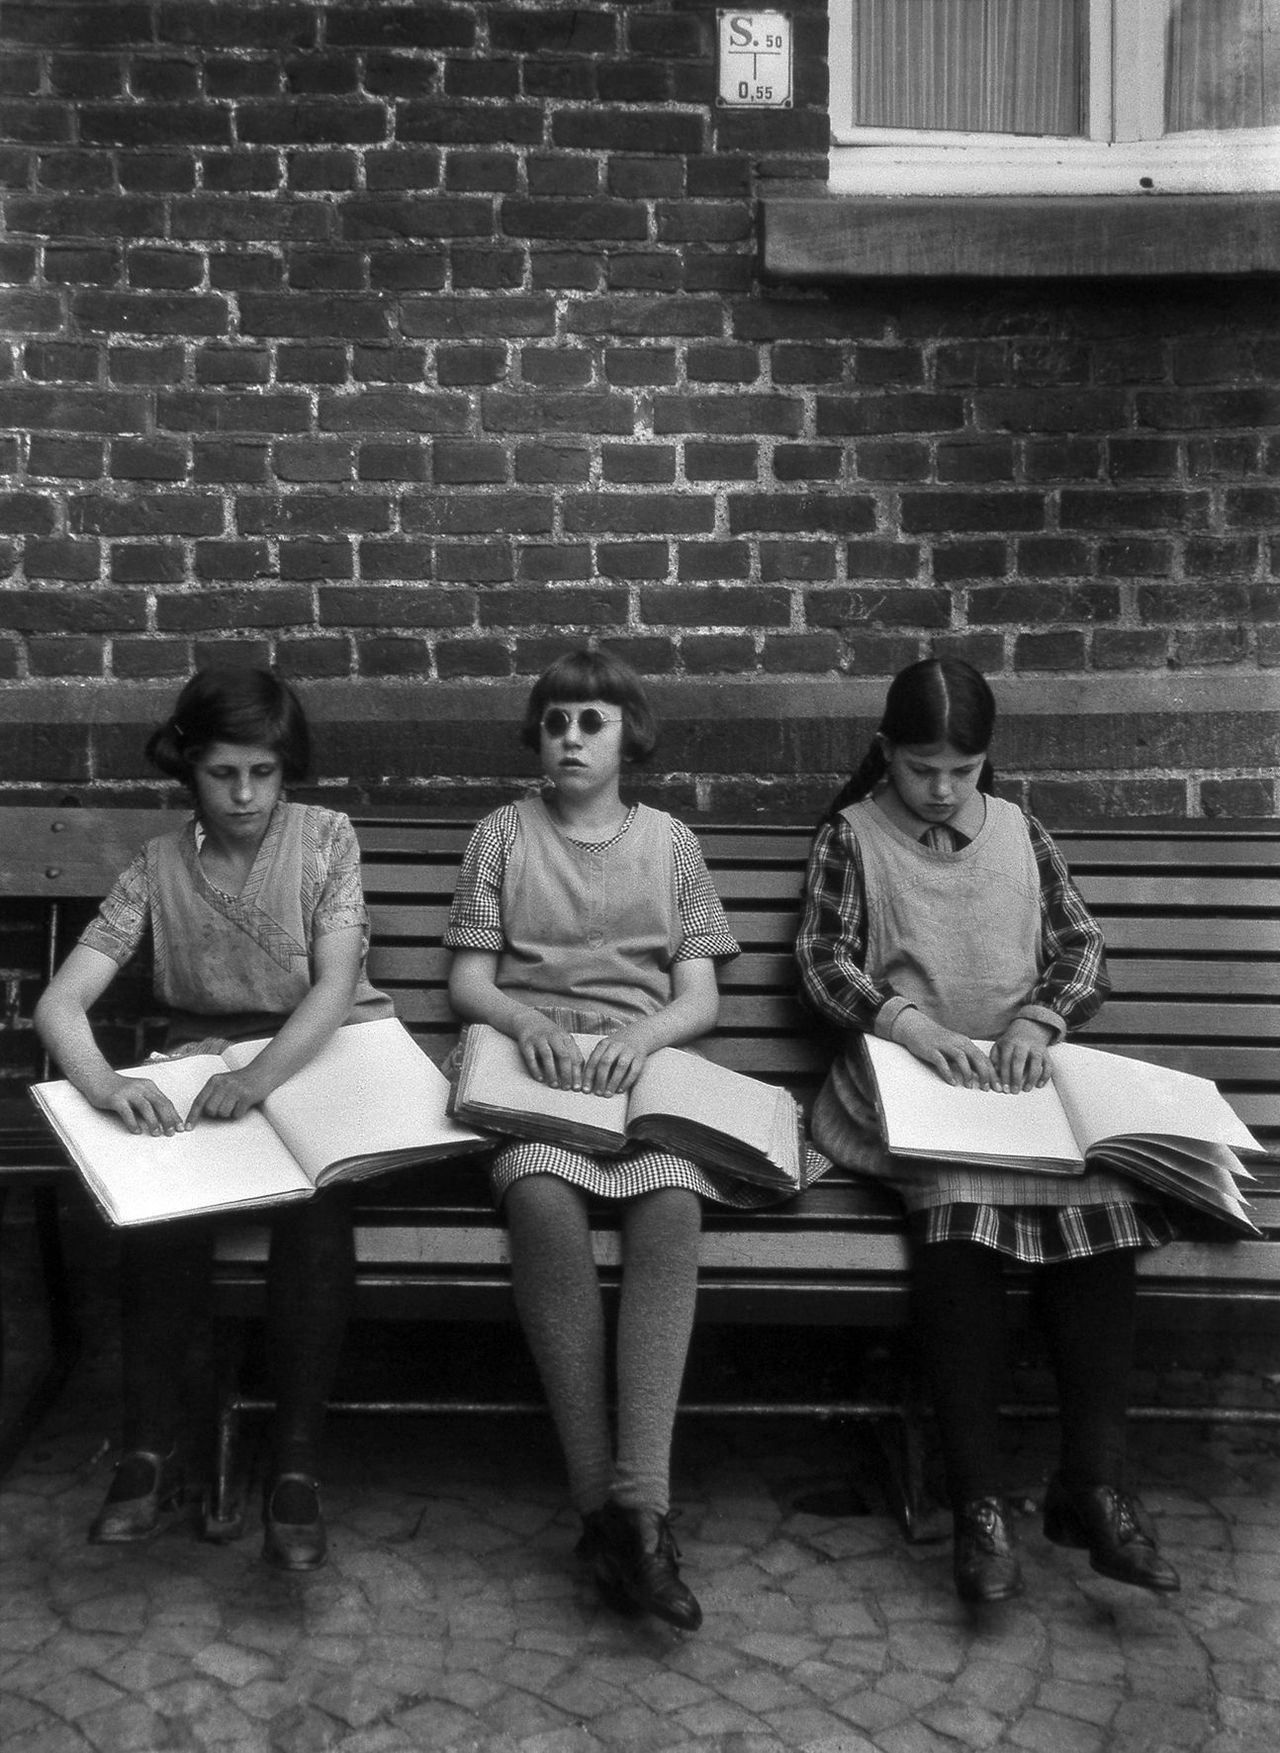 Blind Children Reading Books August Sander